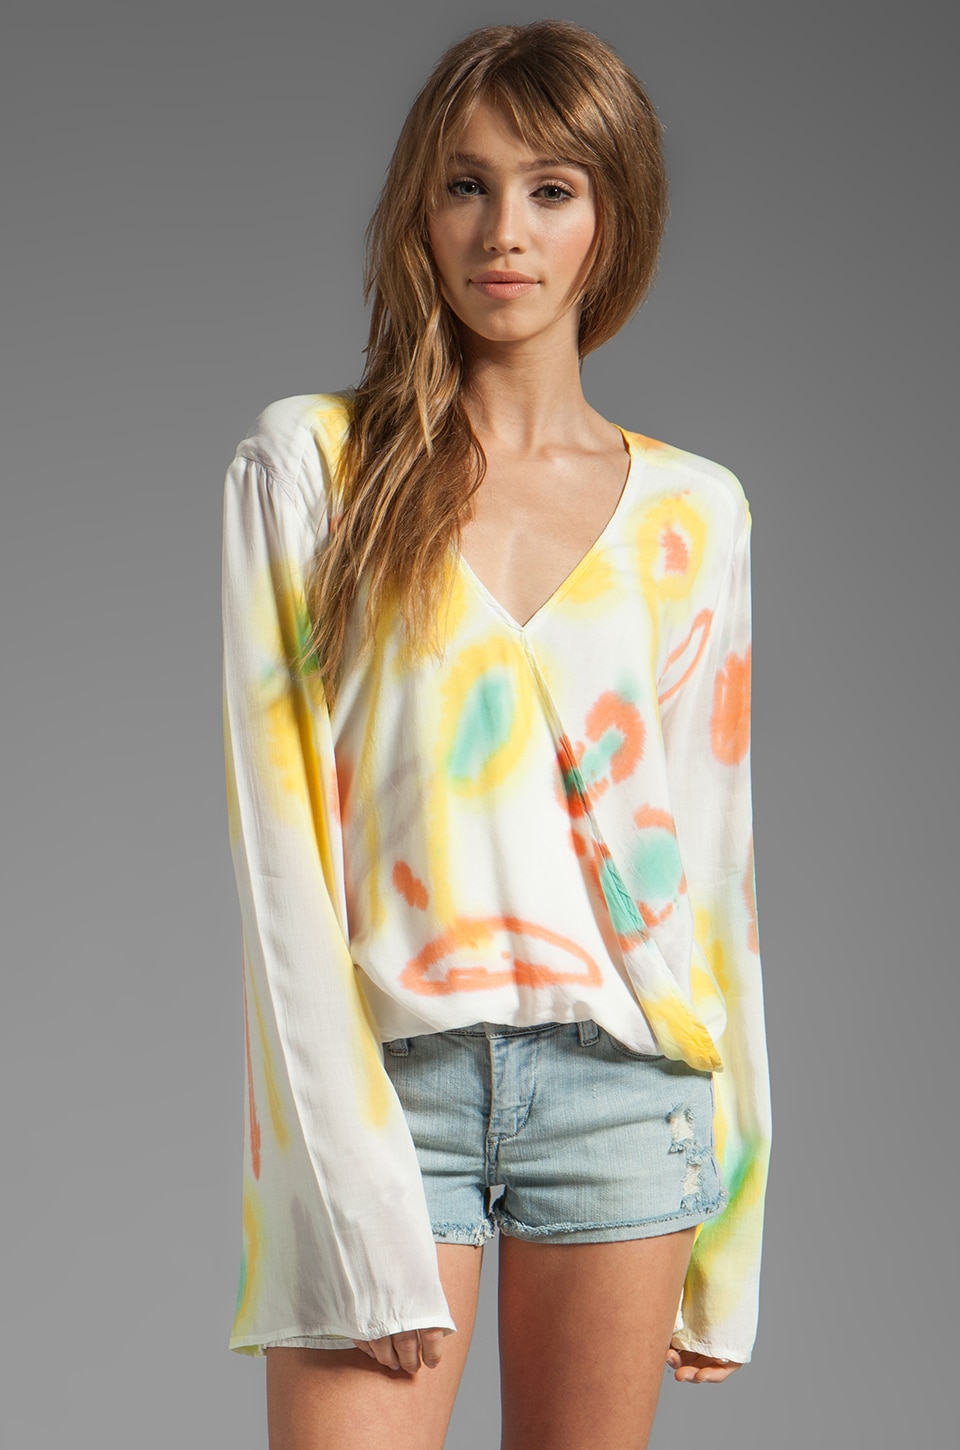 Blu Moon Hayley Long Sleeve Top in Jungle Tie Dye